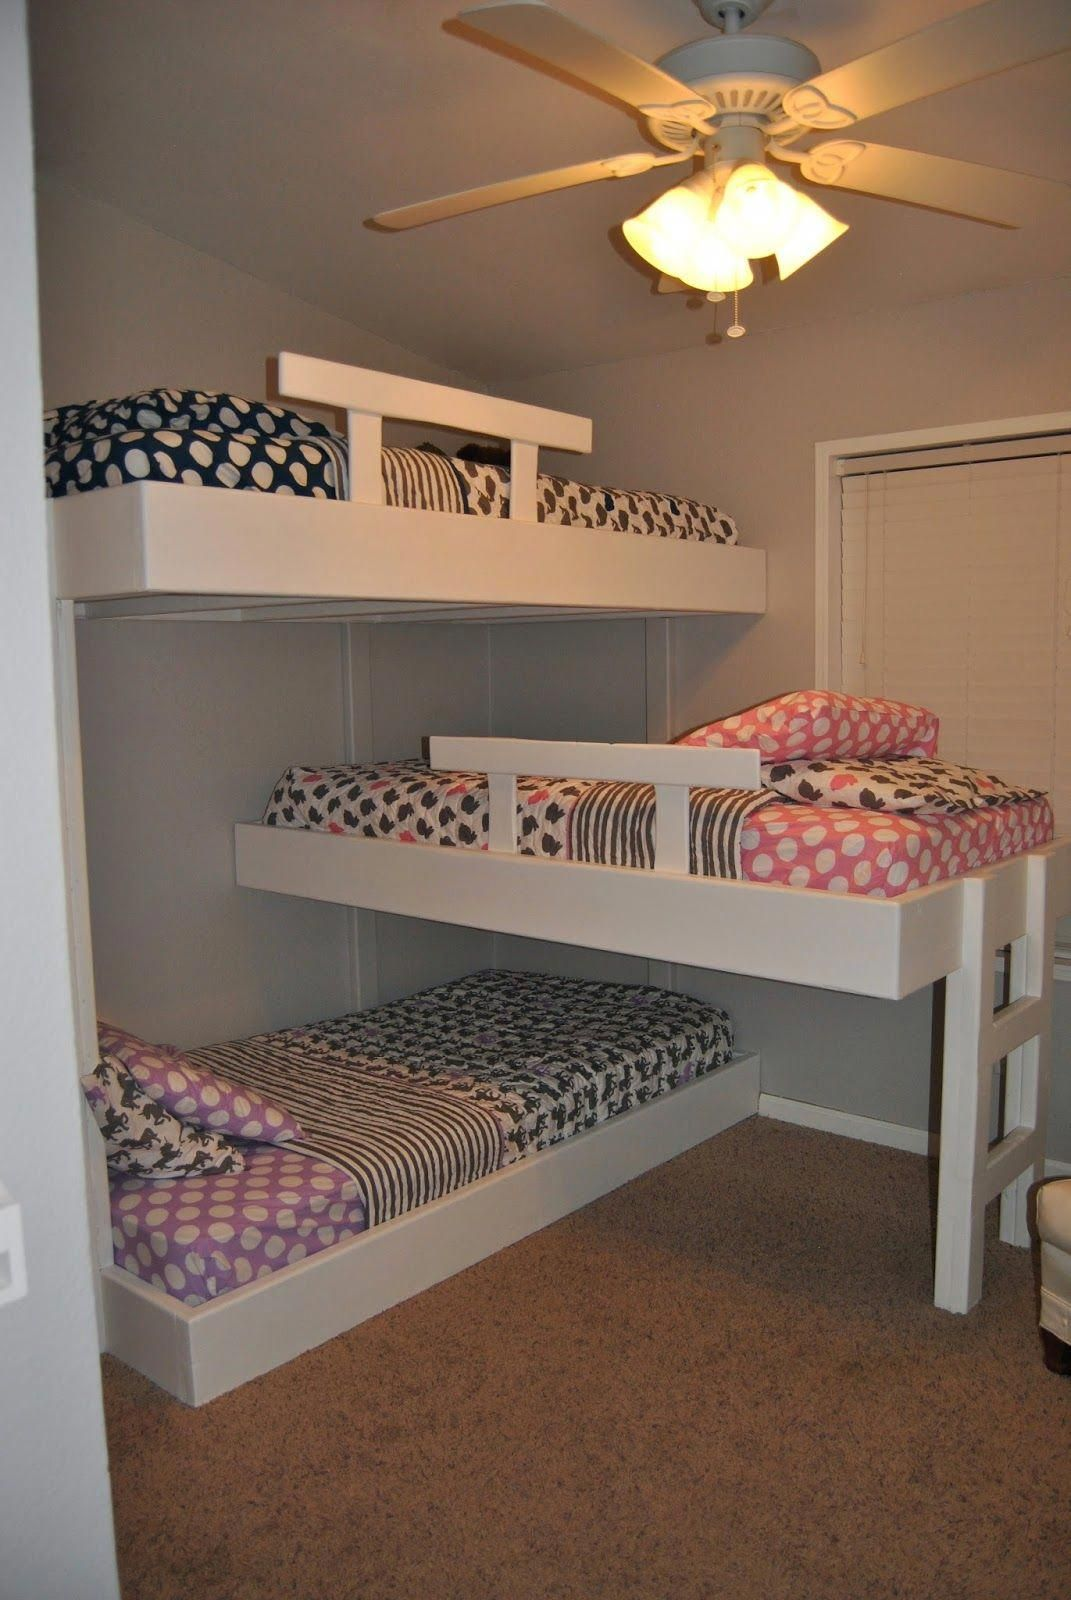 Homemade loft bed ideas  Triple Bunk Bed on Life with Mack u Macy  We love our new bunks and